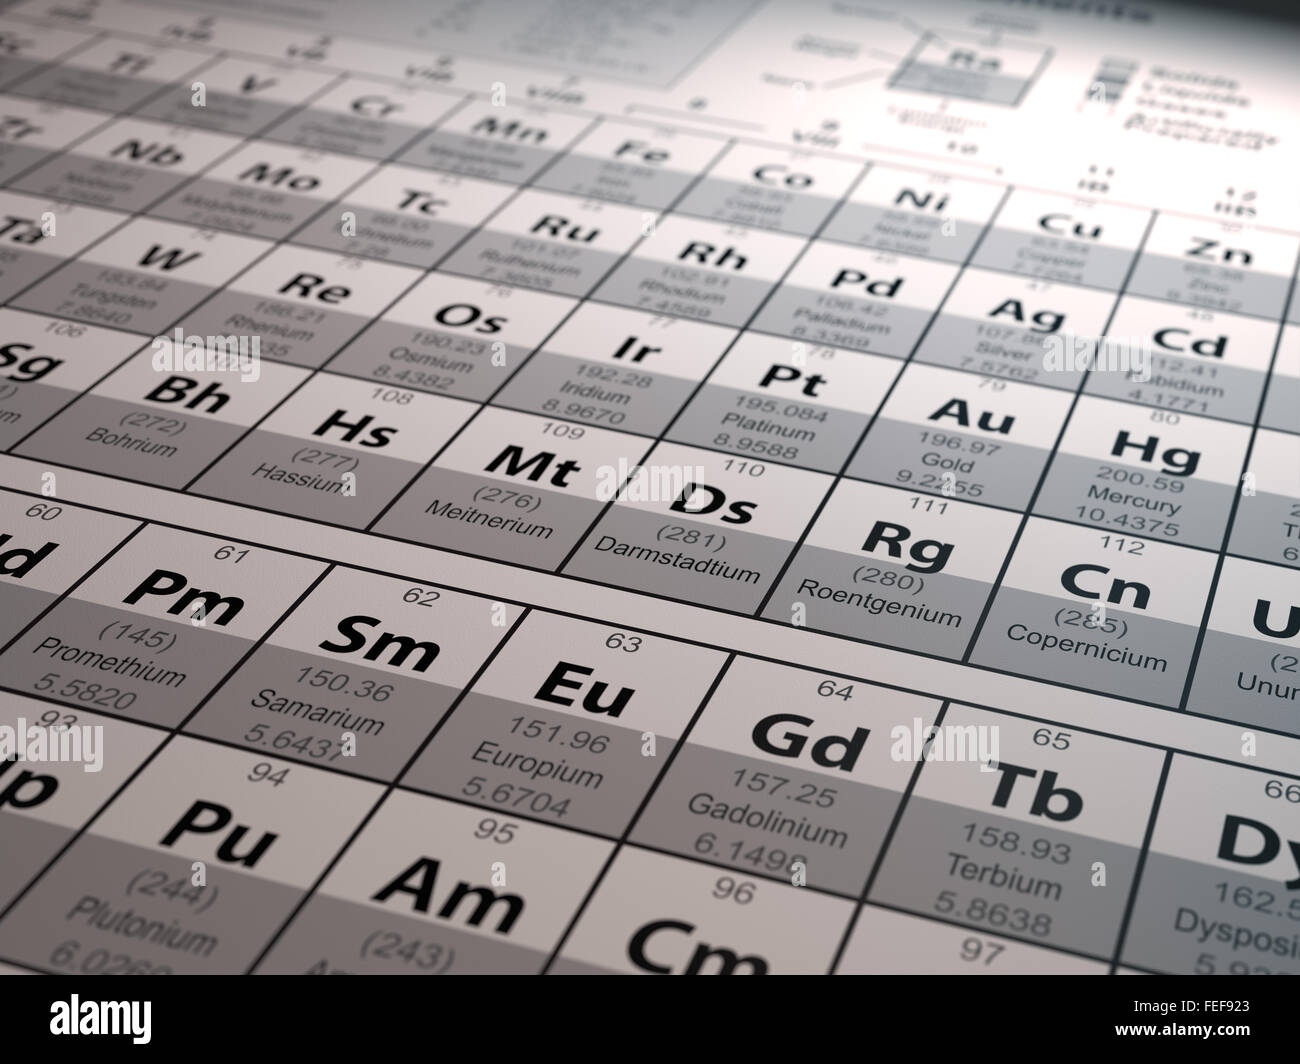 Mendeleev periodic table stock photos mendeleev periodic table periodic table of the elements science background 3d stock image urtaz Choice Image